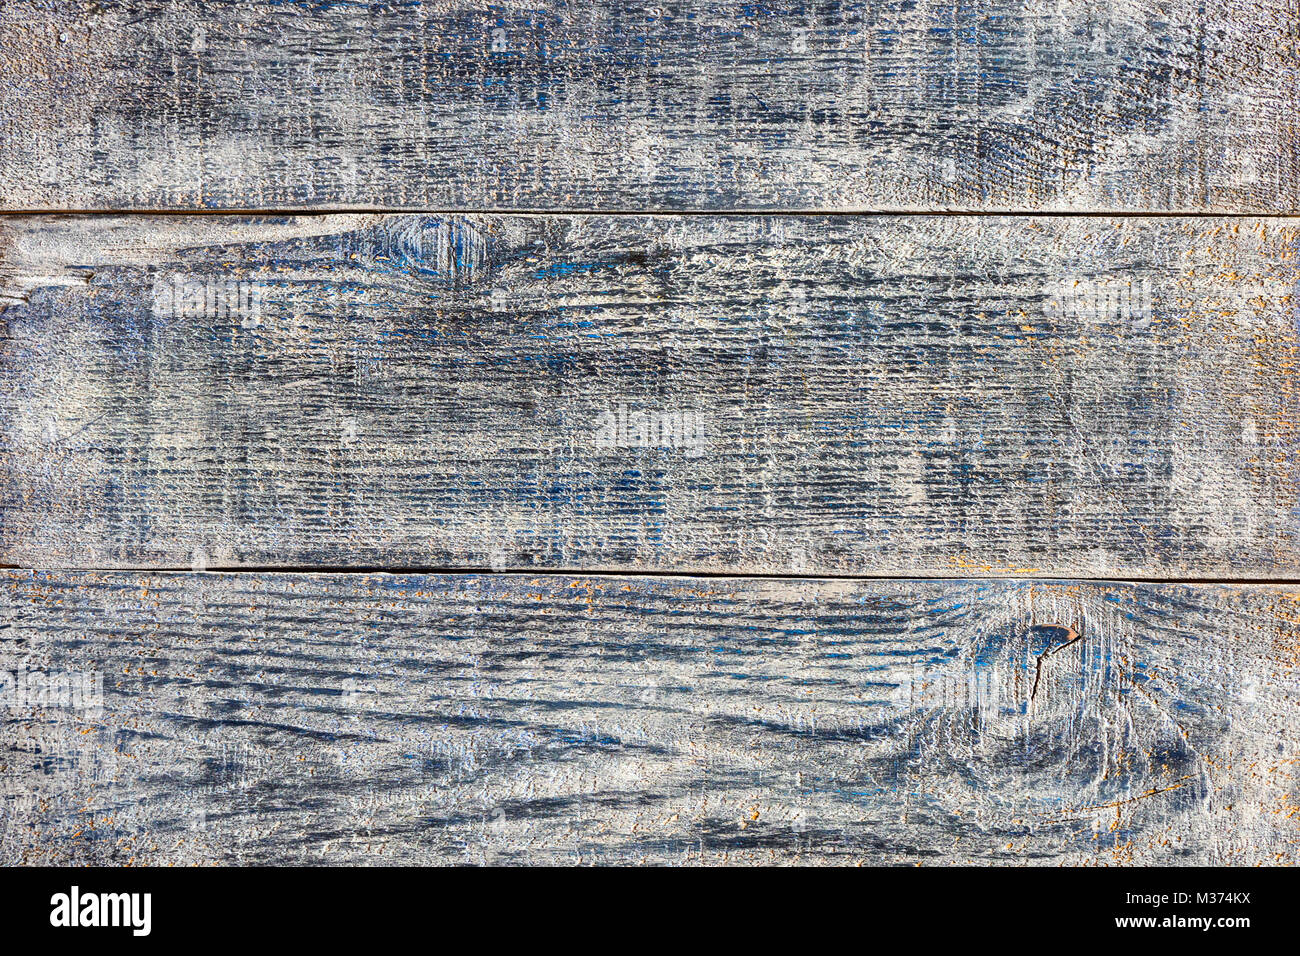 Gray blue denim effect paint Old wood planks painted shabby background texture - Stock Image